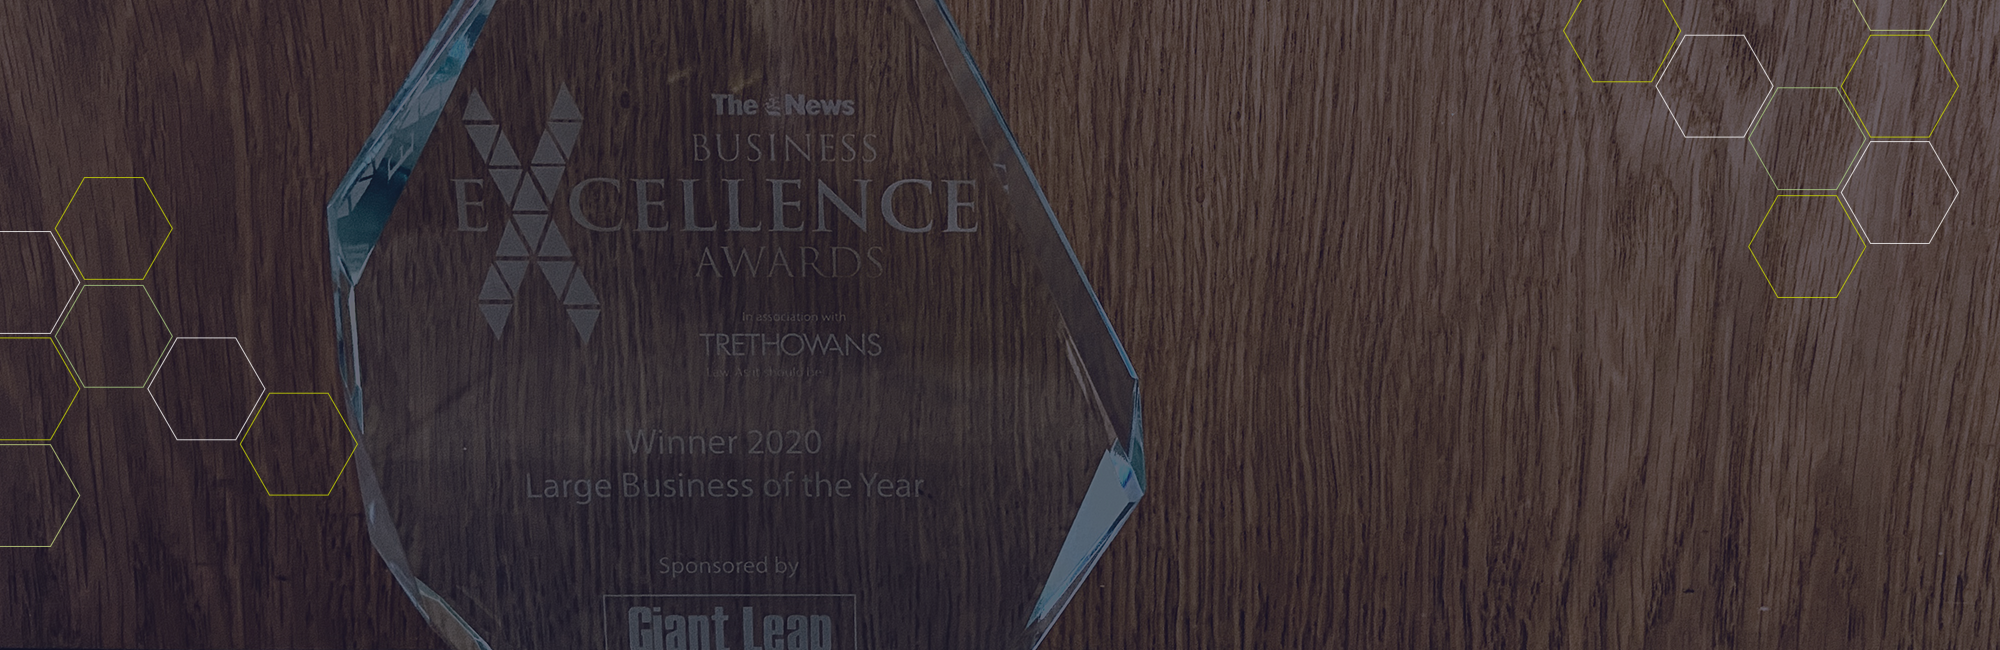 Winners at The News Business Excellence Awards 2020